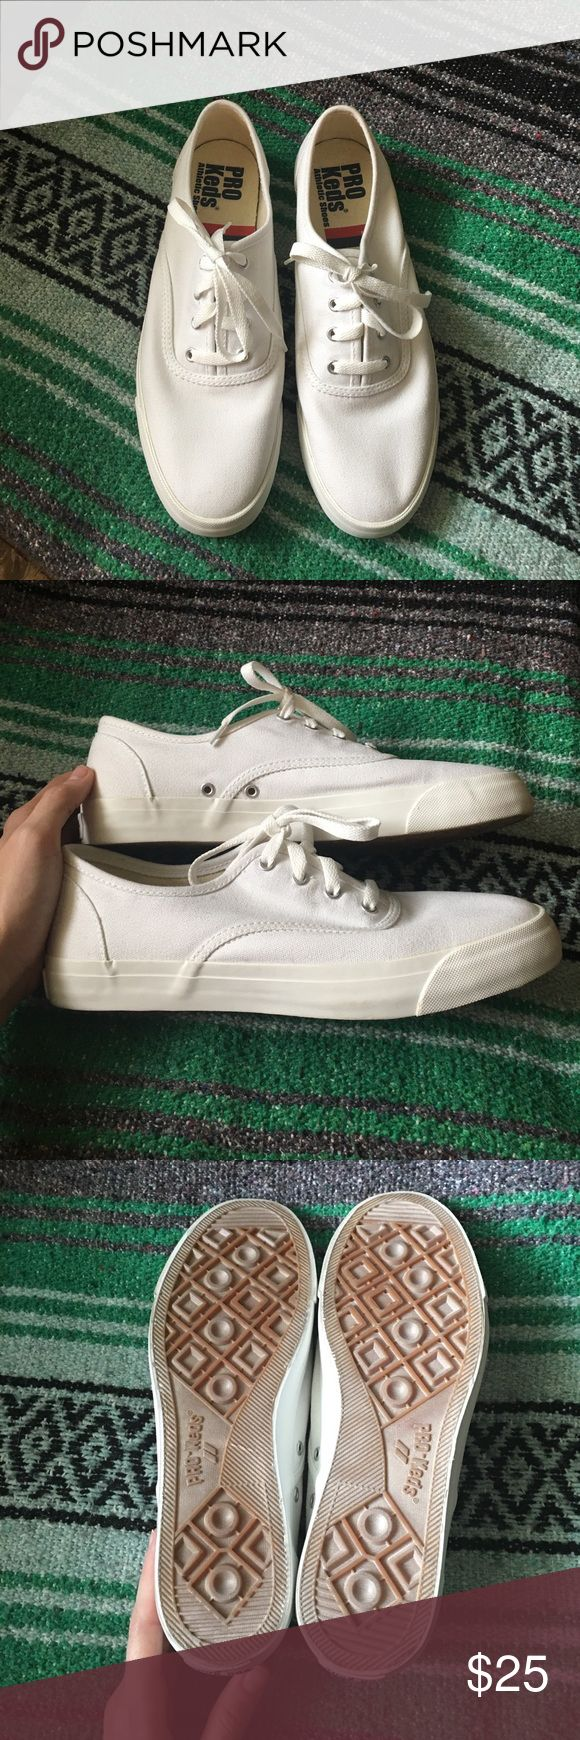 NWOT White Keds Awesome, never worn white Pro Keds! They've been sitting in my closet. Flats just make my short legs look like thumbs, haha. They are super cute and I hope someone has a good home for them! Keds Shoes